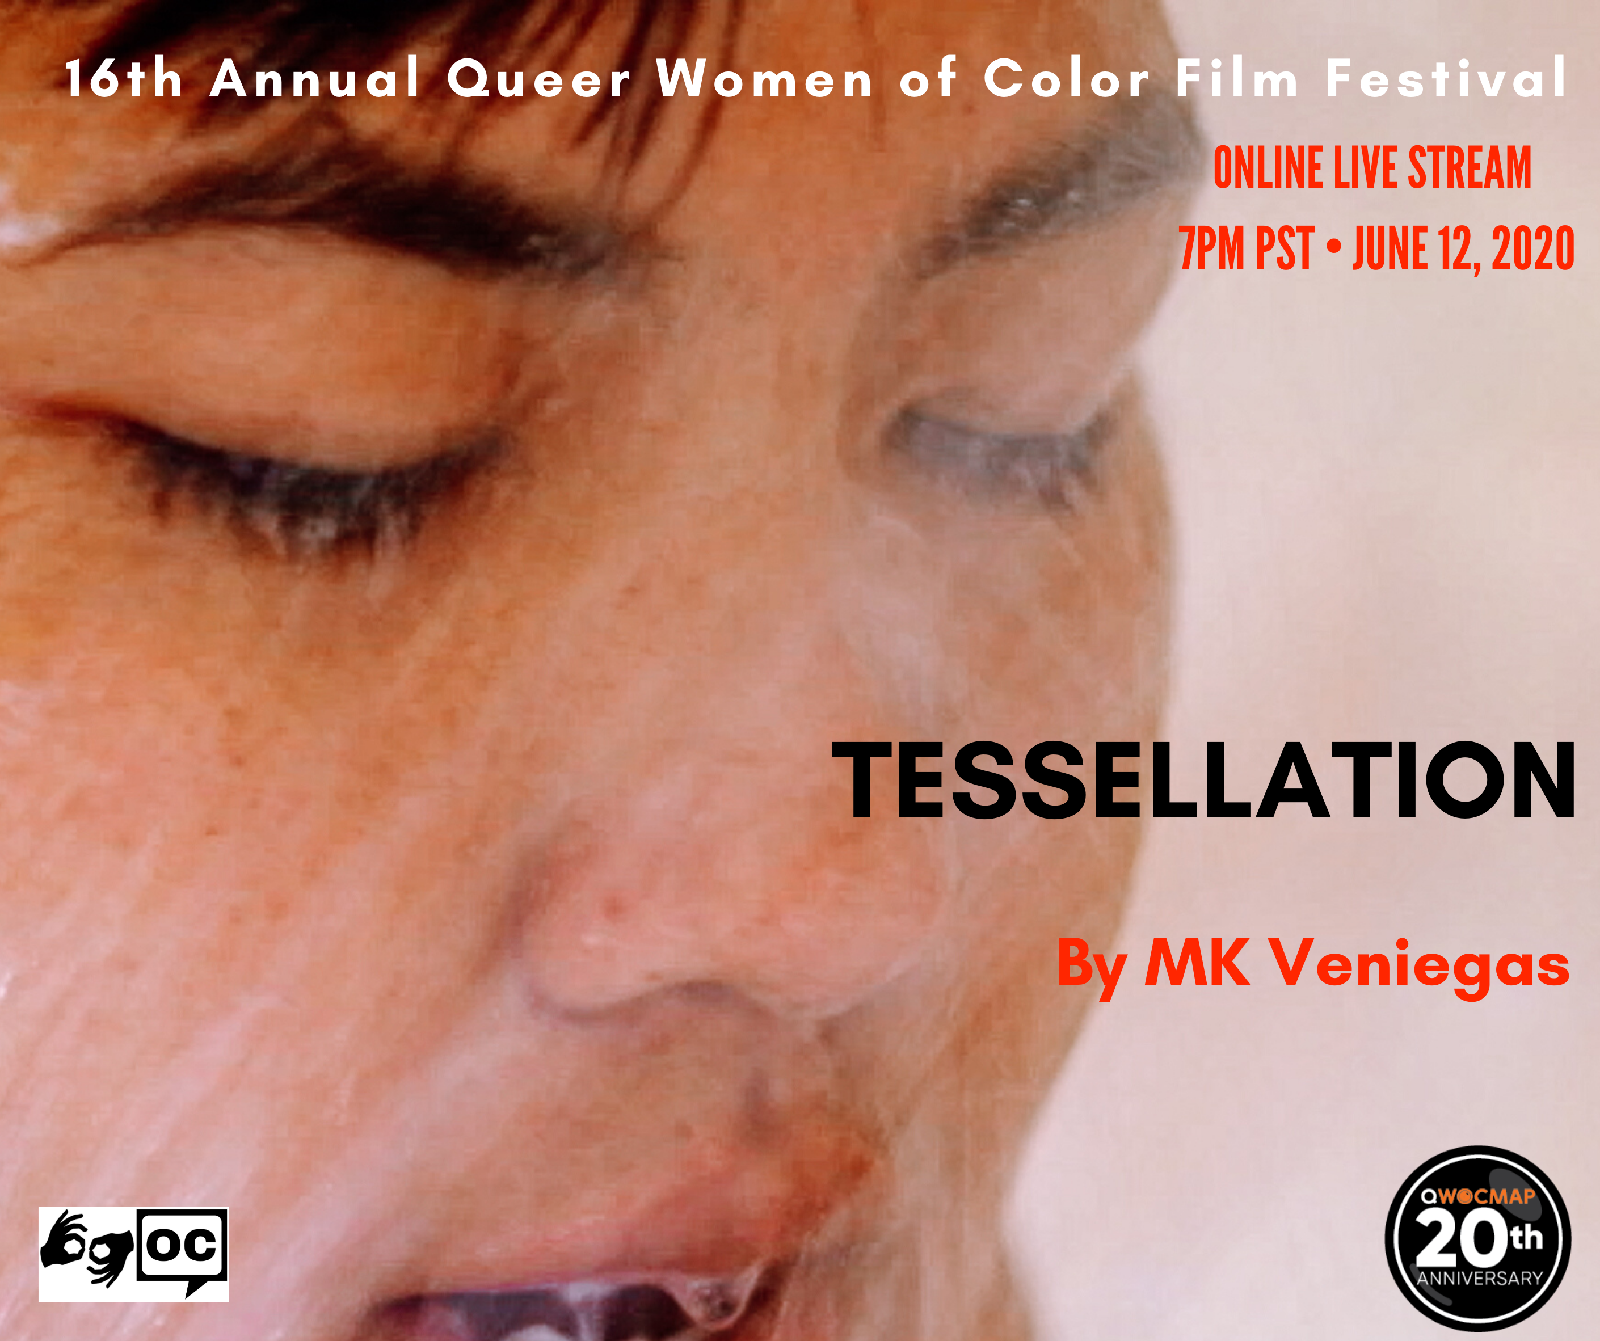 A genderfluid queer Pilipinx person with medium brown skin and short black hair stands in the shower, with closed eyes and mouth slightly parted. The top of the image reads 16th Annual Queer Women of Color Film Festival.Text below reads TESSELLATION by MK Veniegas. The QWOCMAP logo is on the bottom right, the ASL and open captions logo are on the bottom left. Text below reads ONLINE LIVE STREAM 7PM PST JUNE 12, 2020.